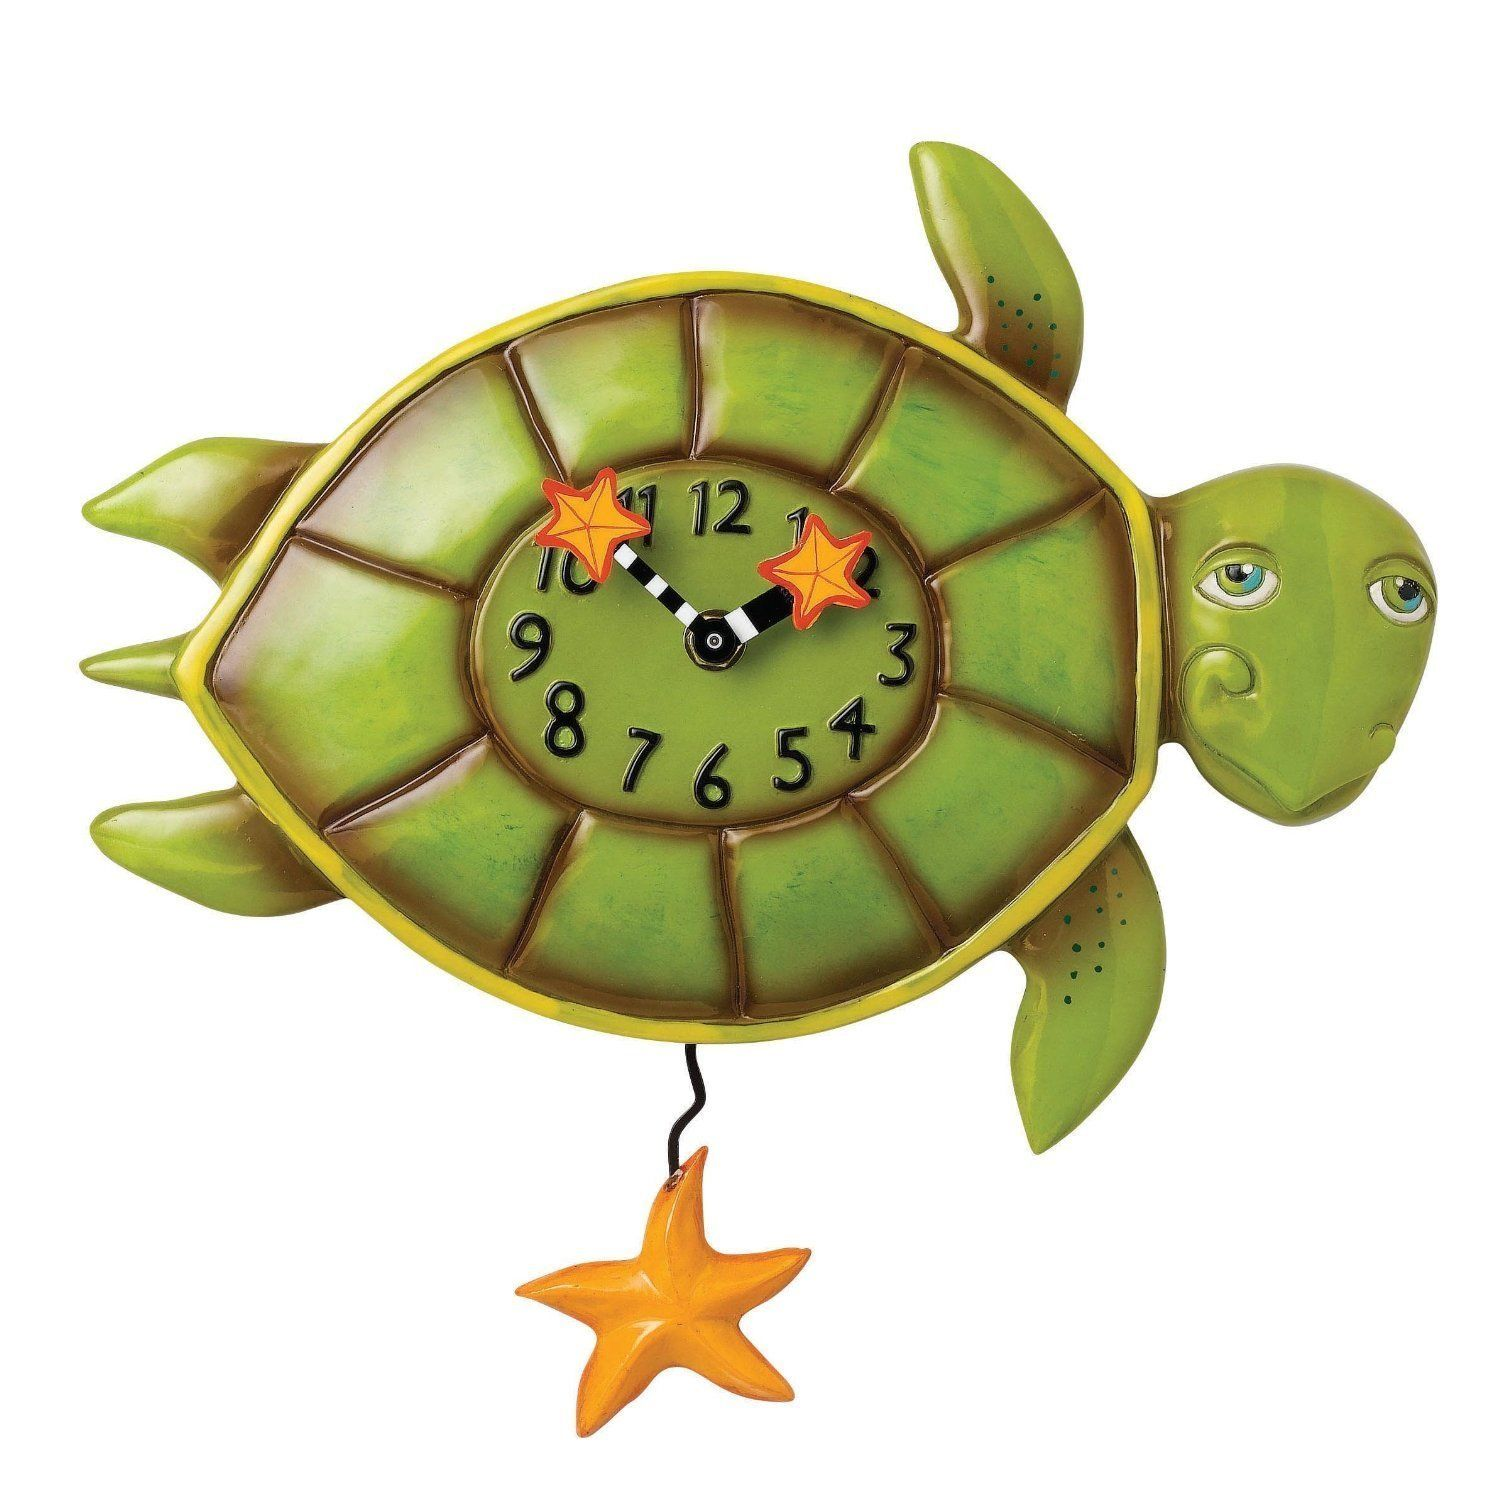 Allen Designs Shelldon the Turtle Pendulum Childs Kids Whimsical Wall Clock